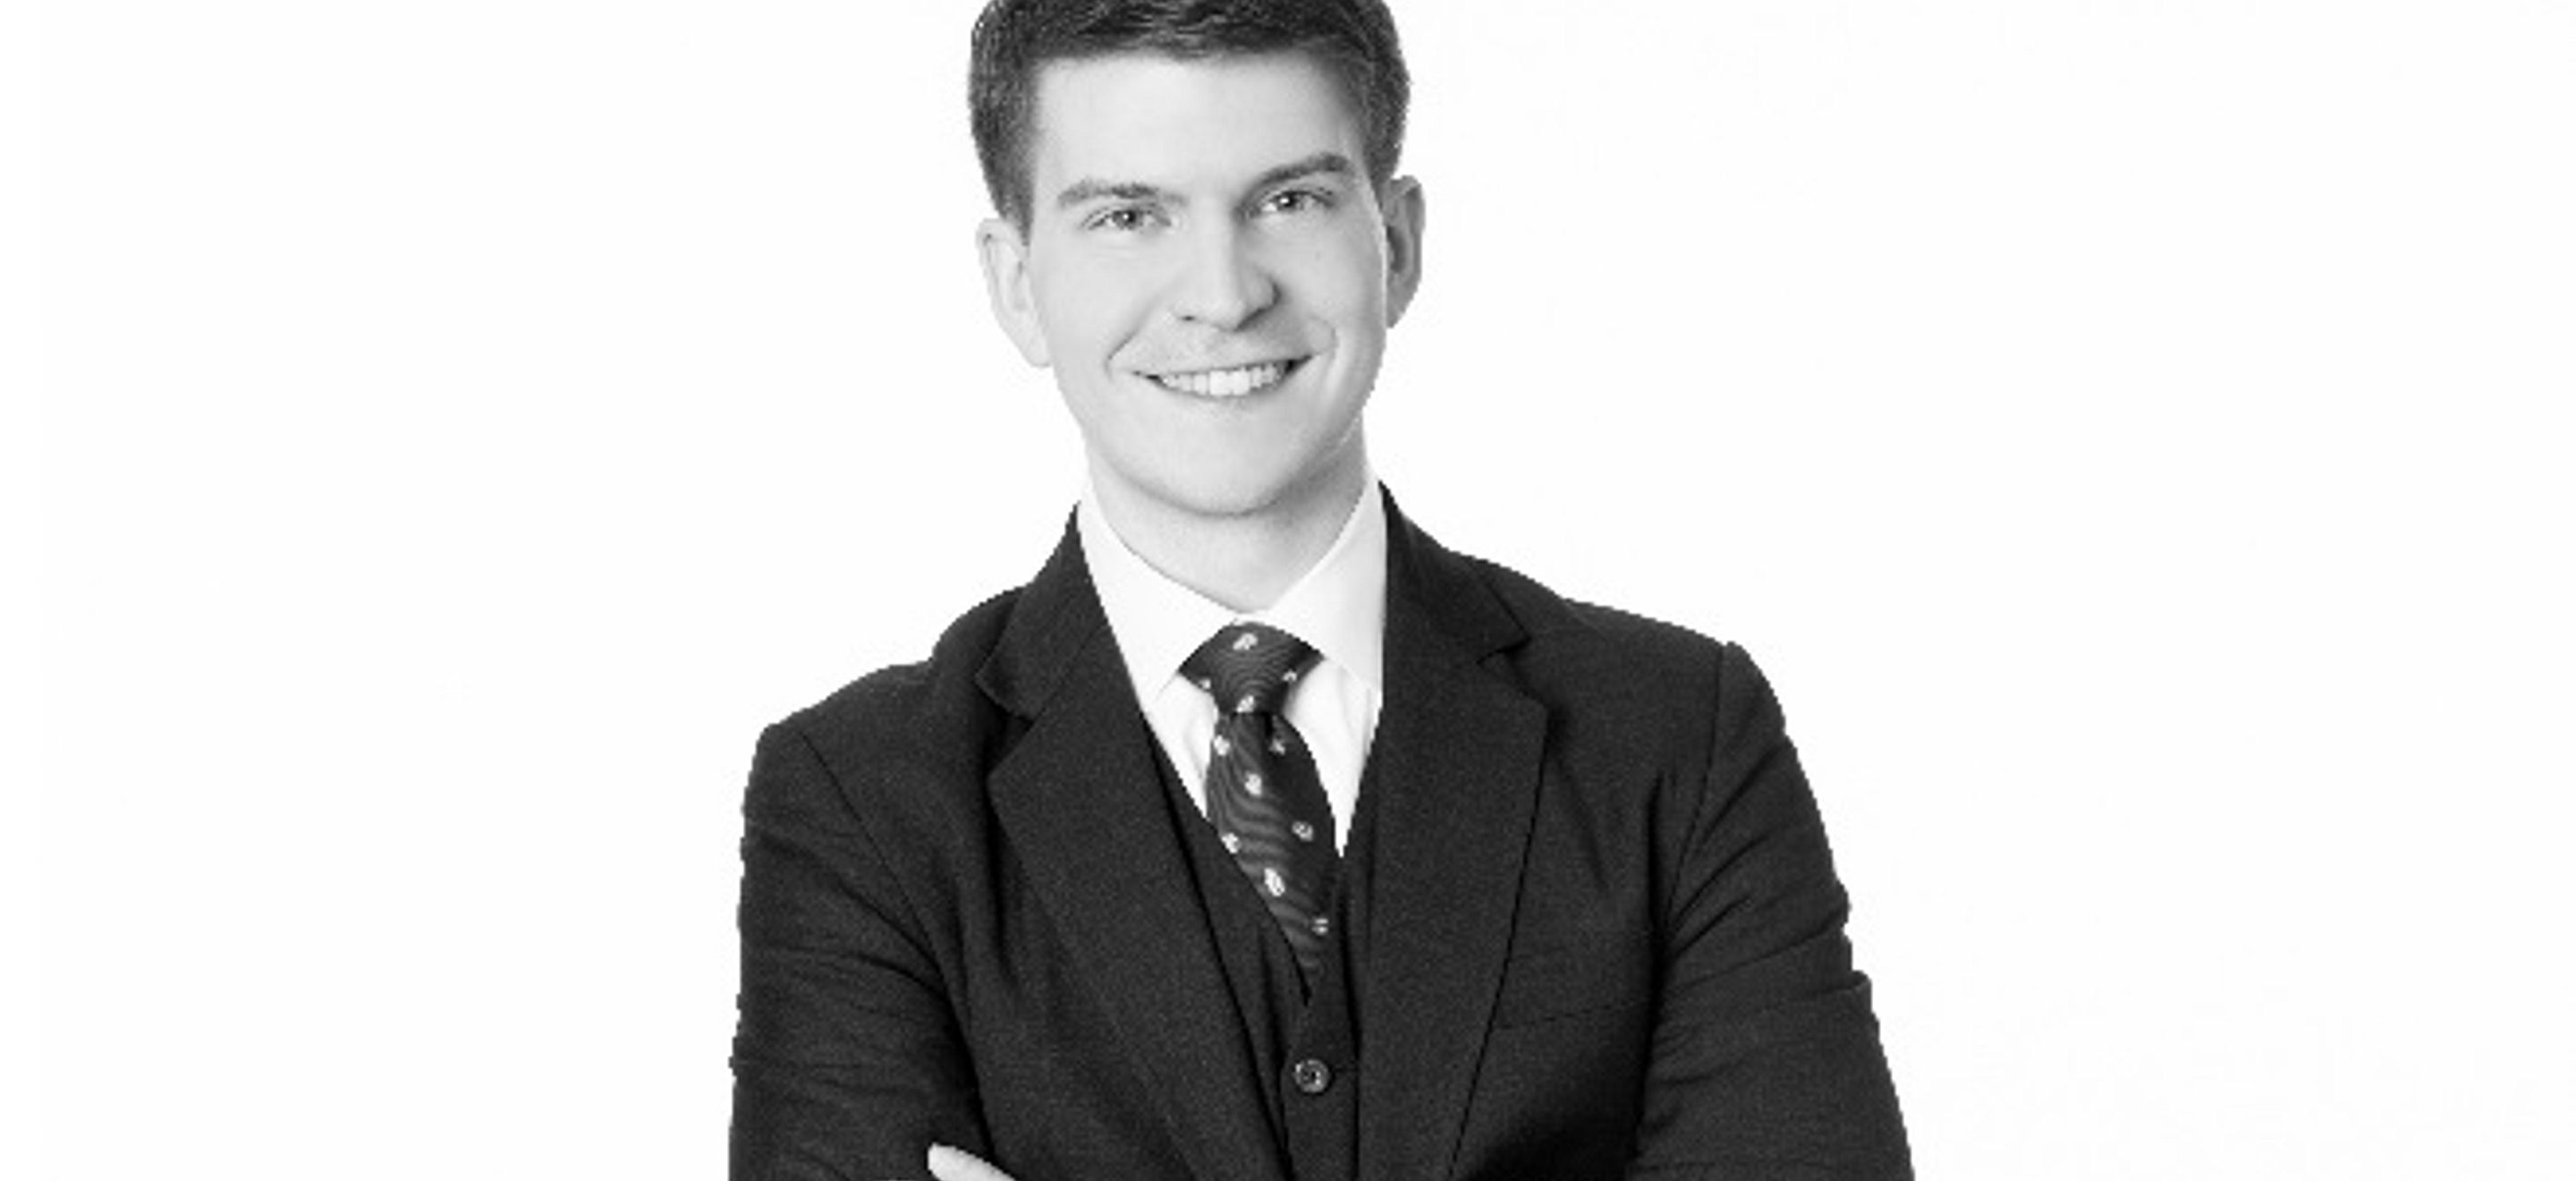 A black and white headshot of IRAP alumnus Jay Minga. He wears a three piece suit and his arms are folded in front of his body.